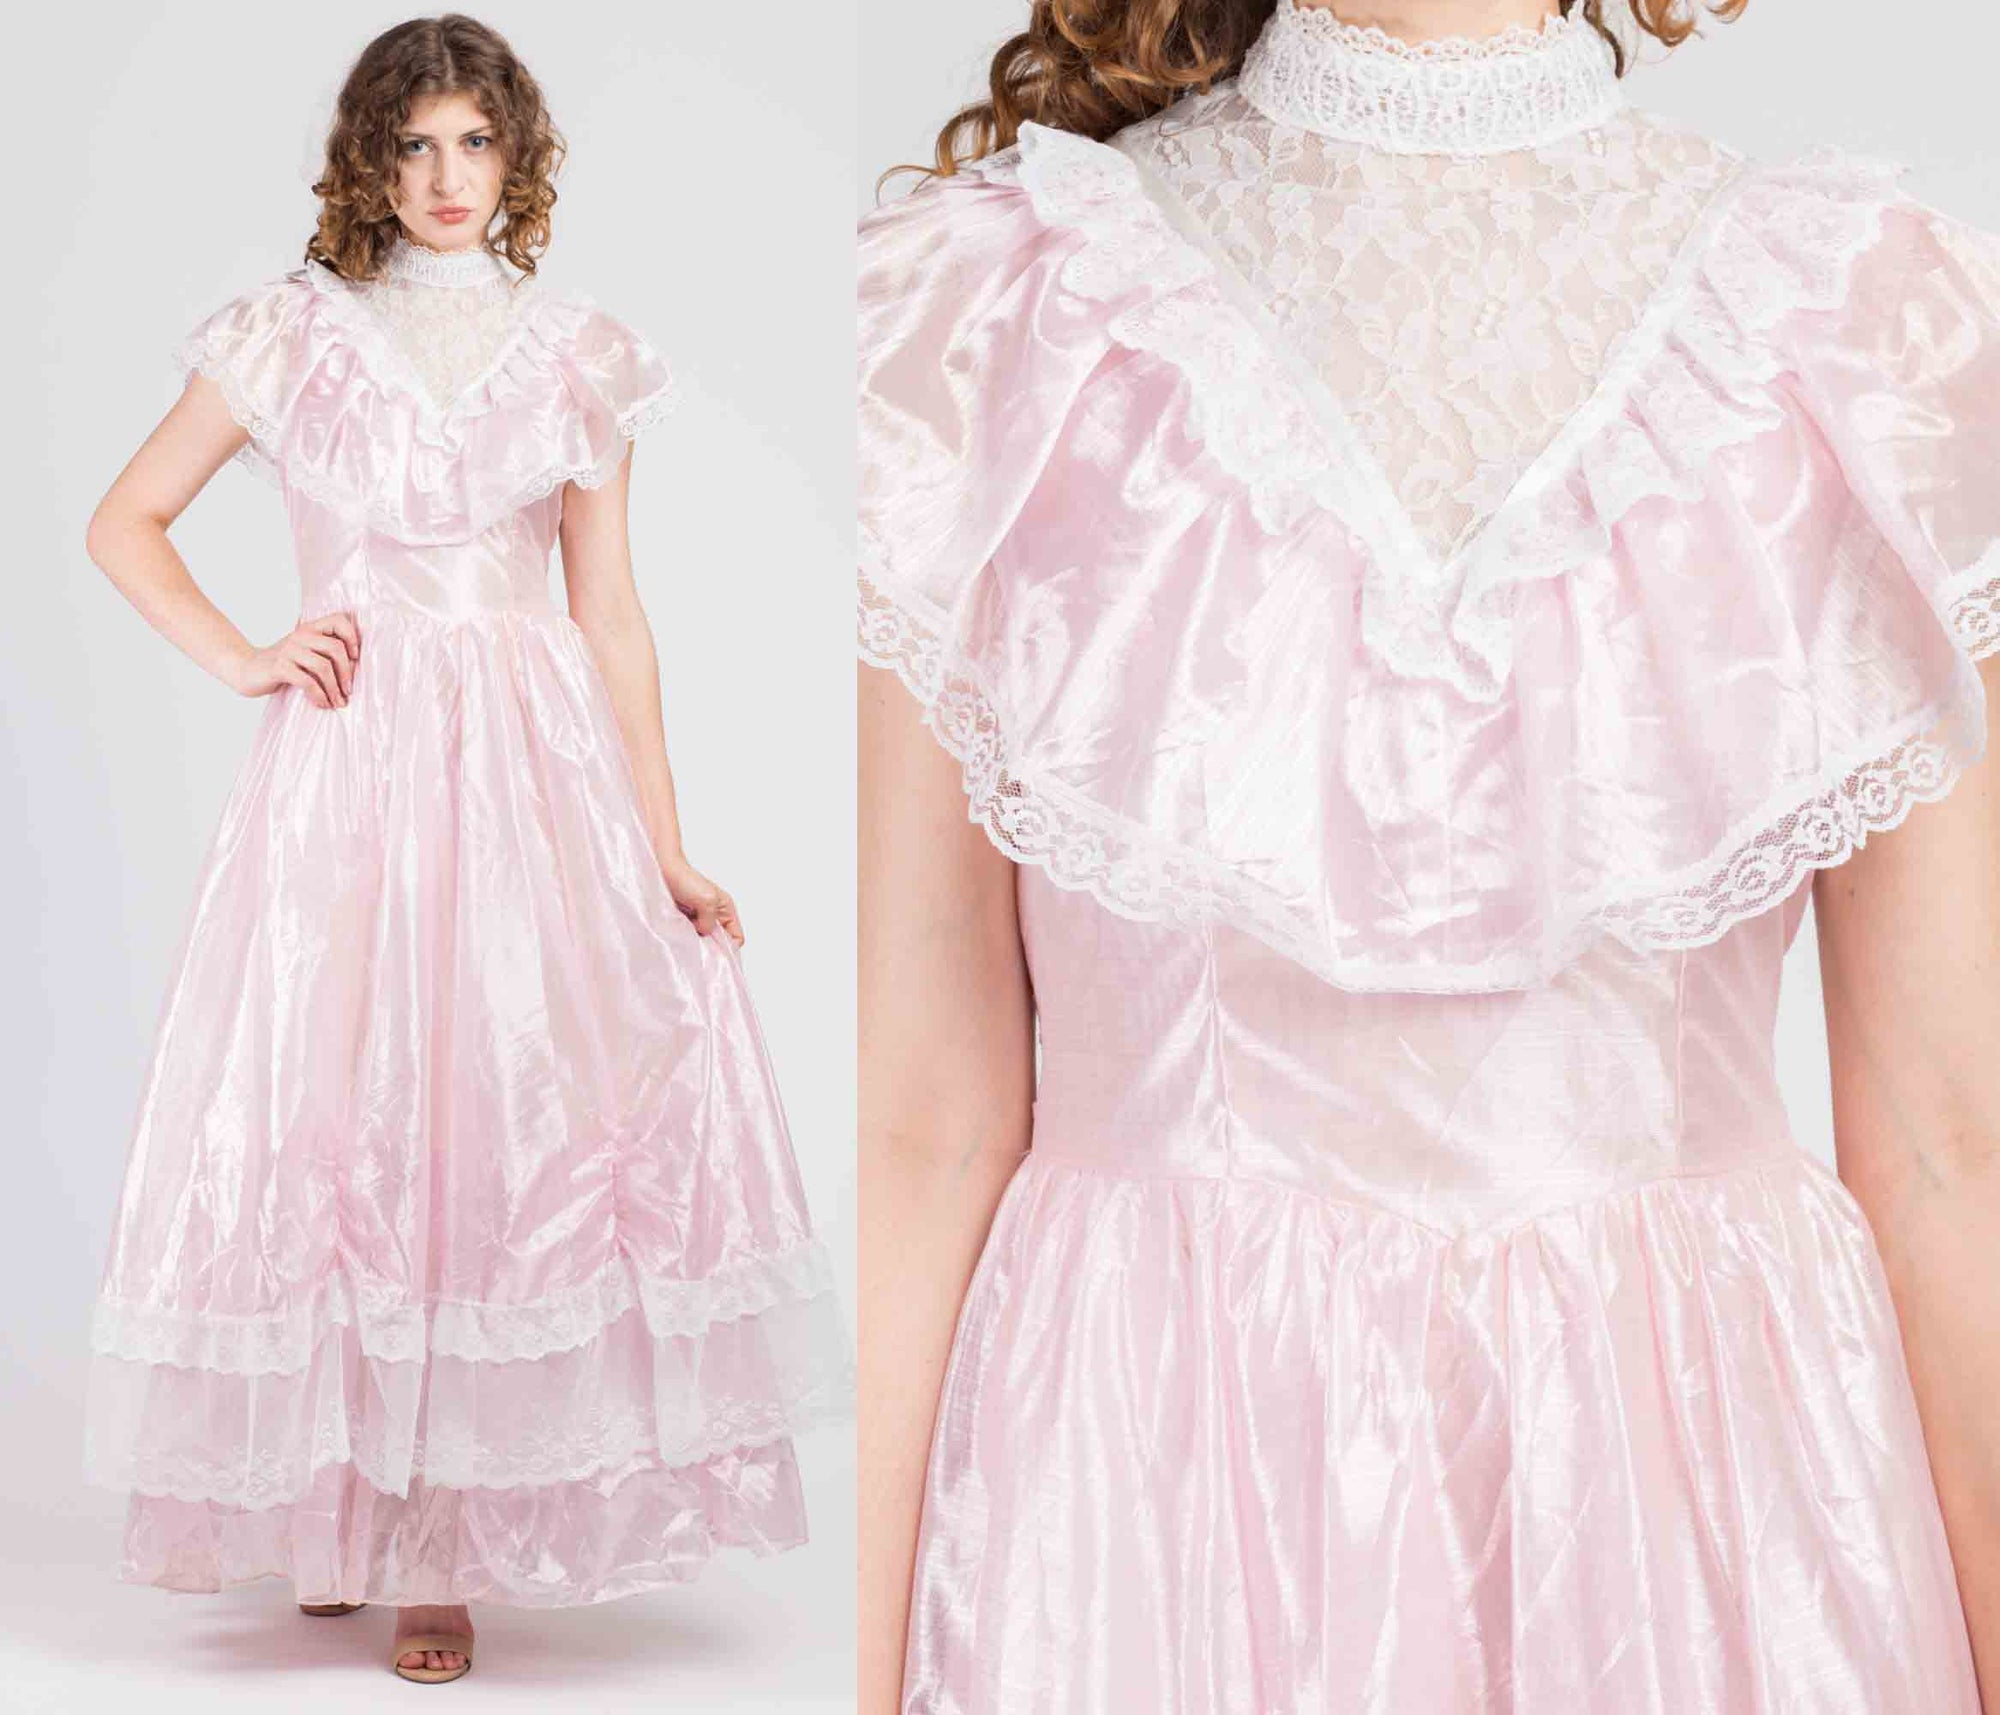 70s Precious Moments Pink Lace Princess Gown - Medium